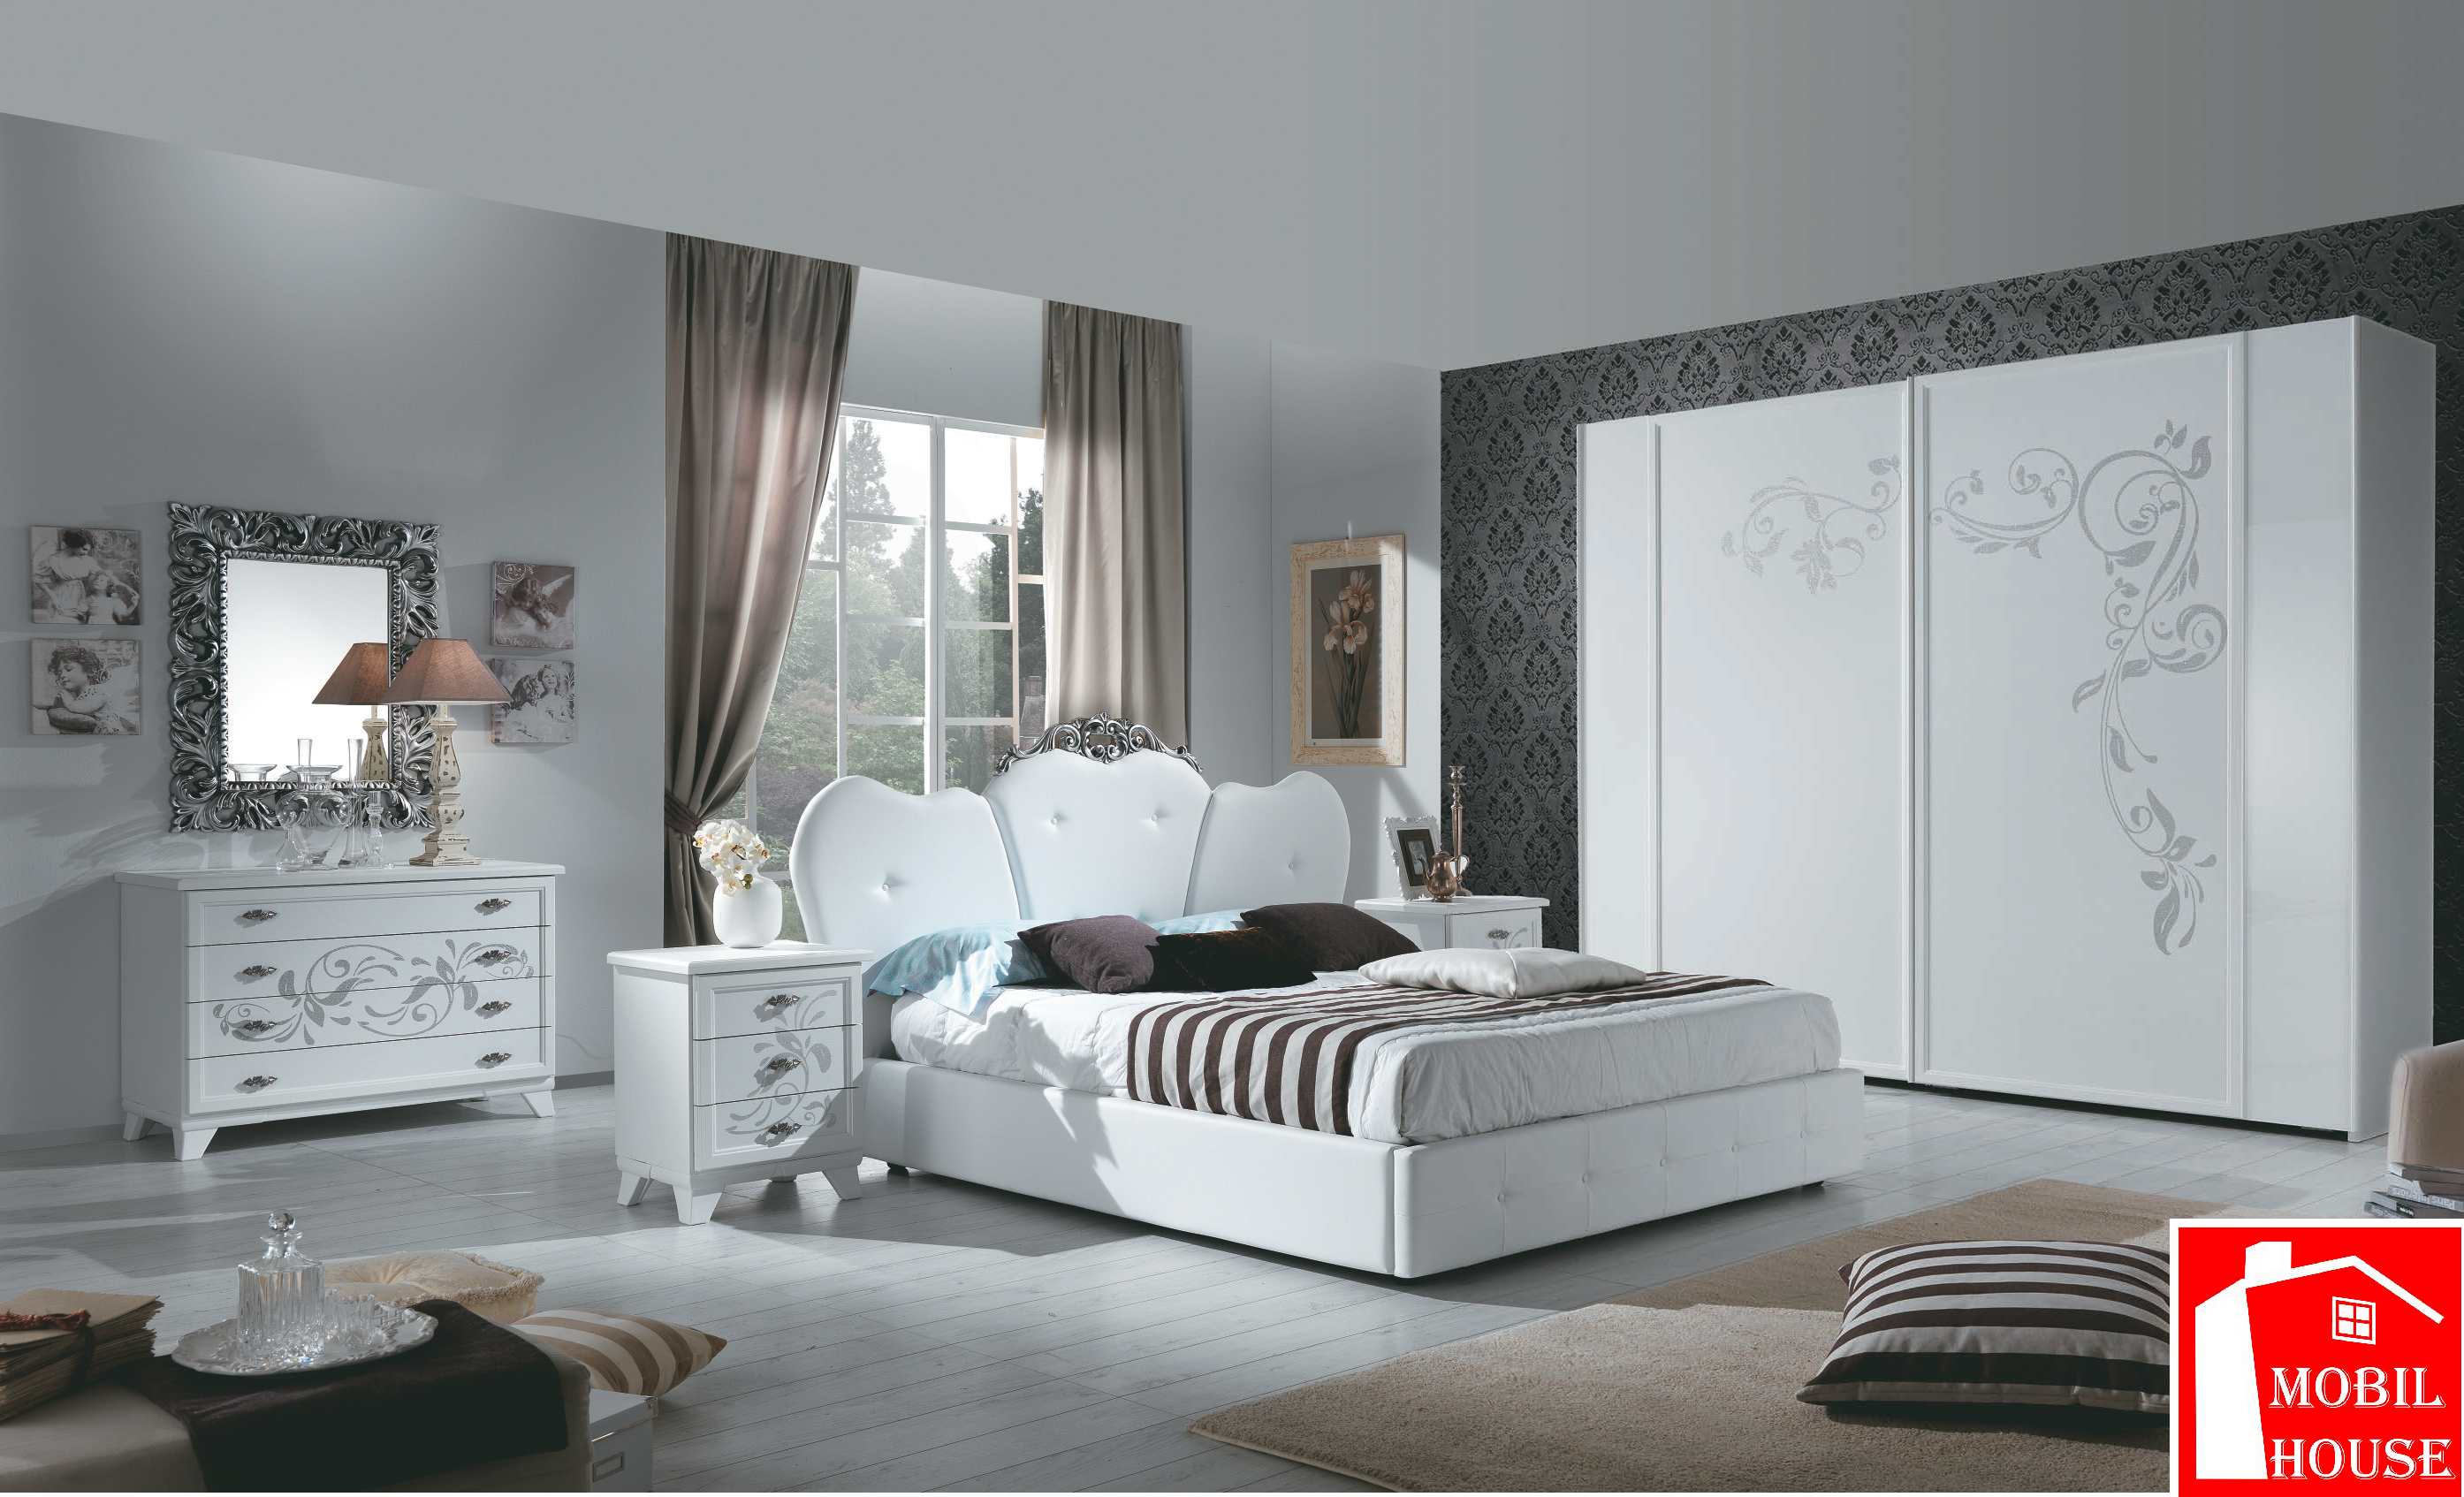 Camera da letto kings mobil house for Camere da letto moderne 2016